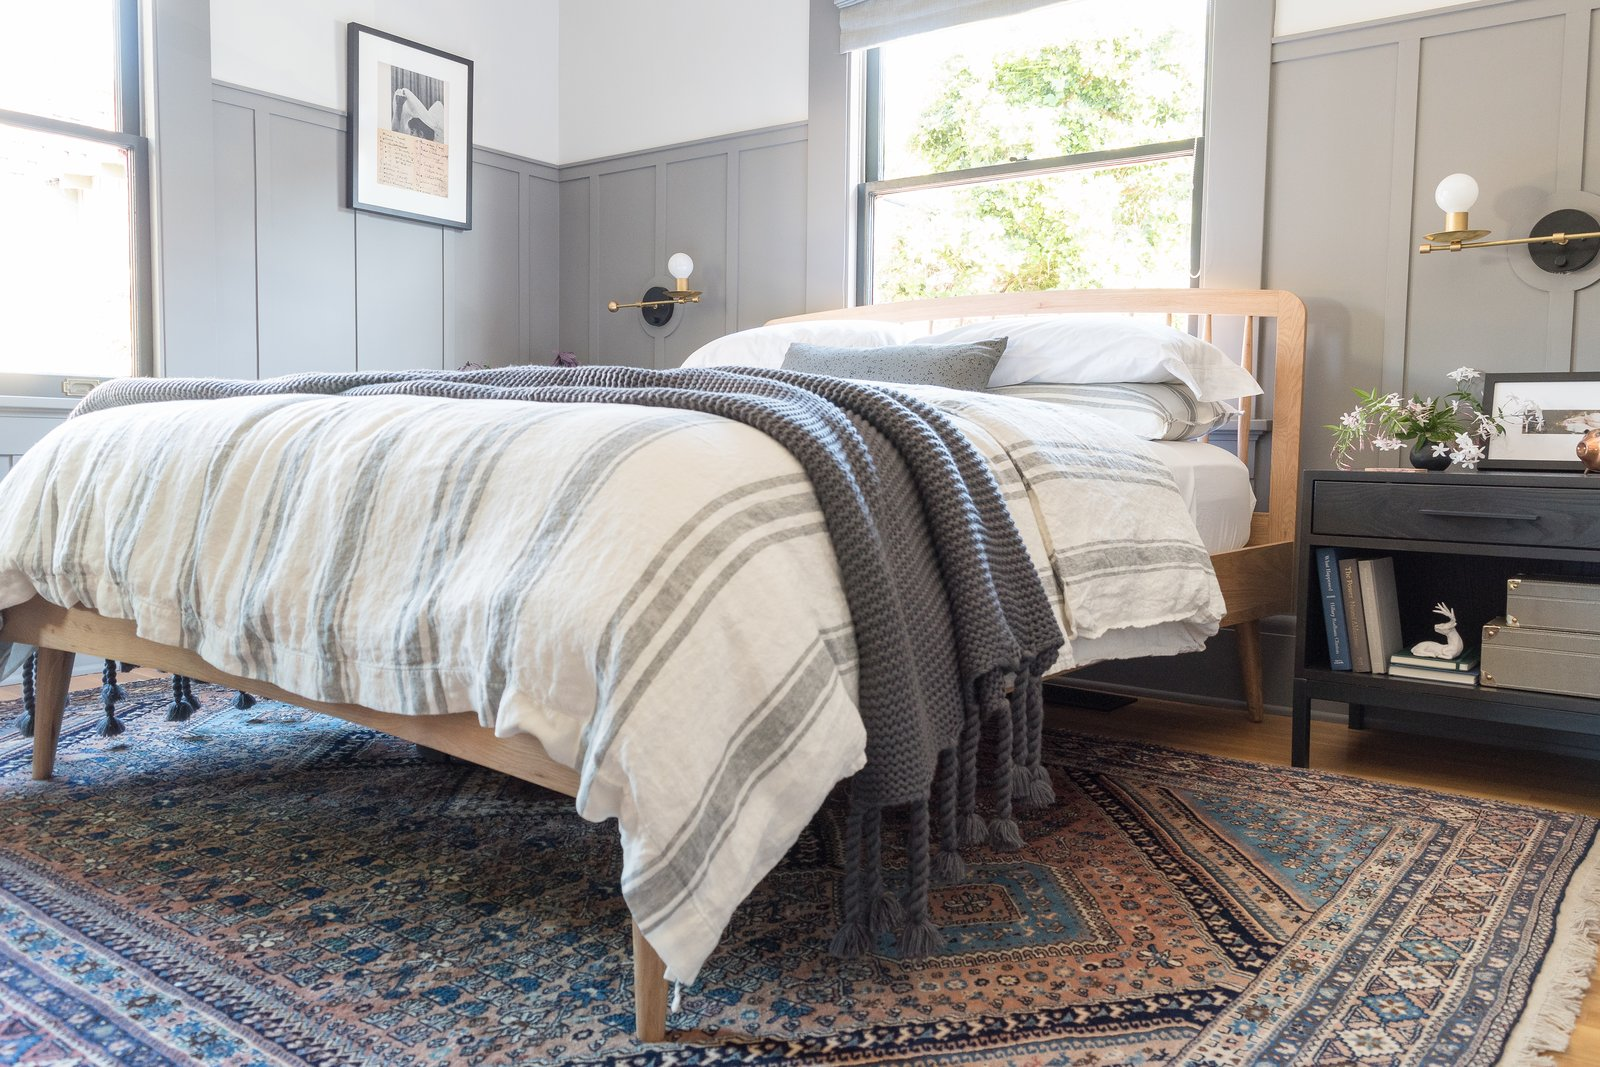 Photo 1 Of 4143 In Bedroom Photos From Budget Breakdown A San Diego Couple Make Over Their Craftsman Bedroom For 29k Dwell